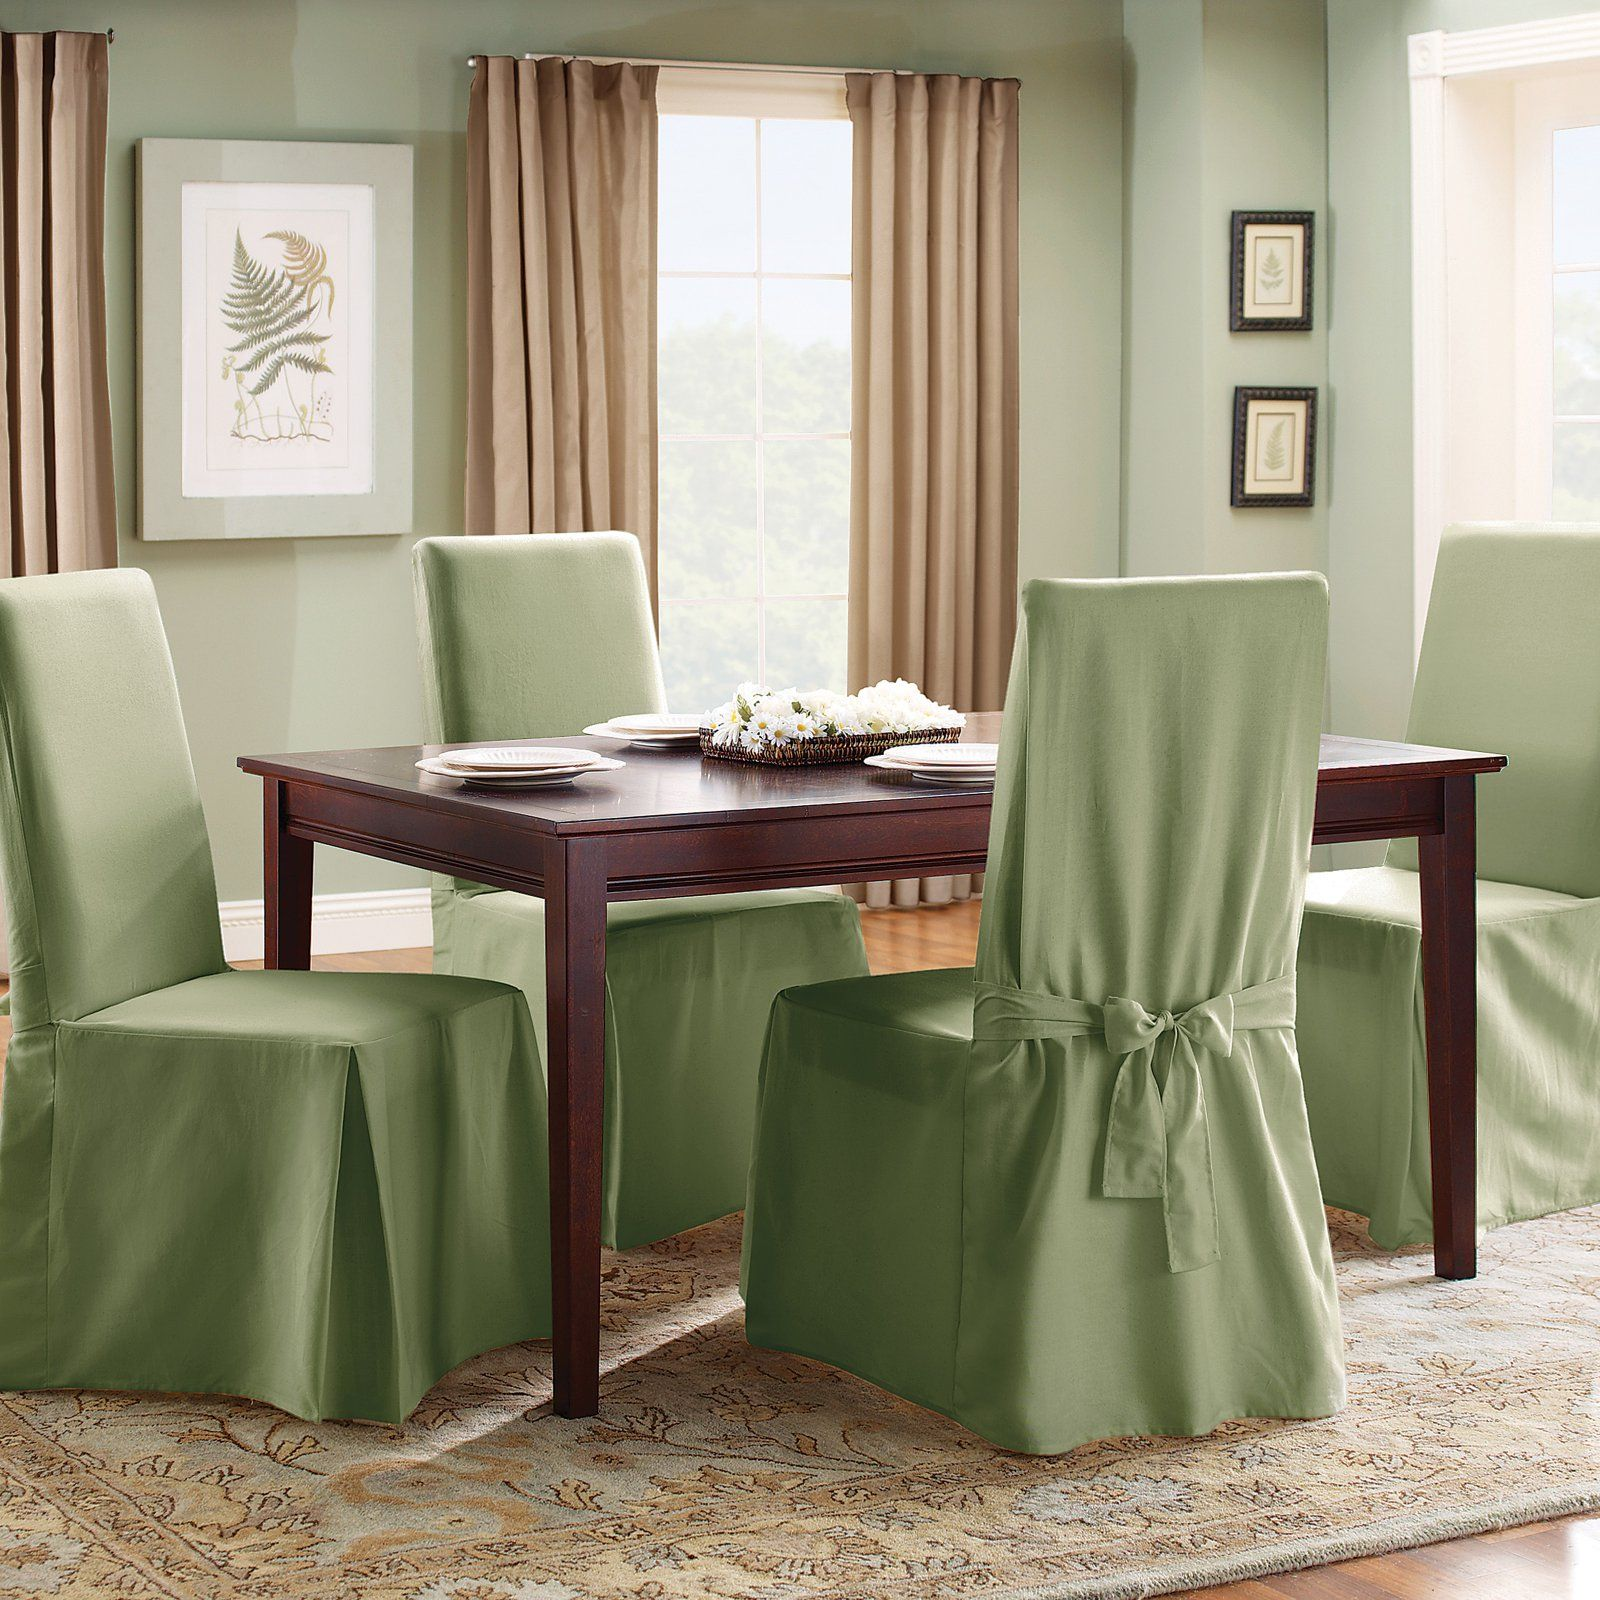 Enjoyable Sure Fit Cotton Duck Long Dining Room Chair Cover Sage Cjindustries Chair Design For Home Cjindustriesco